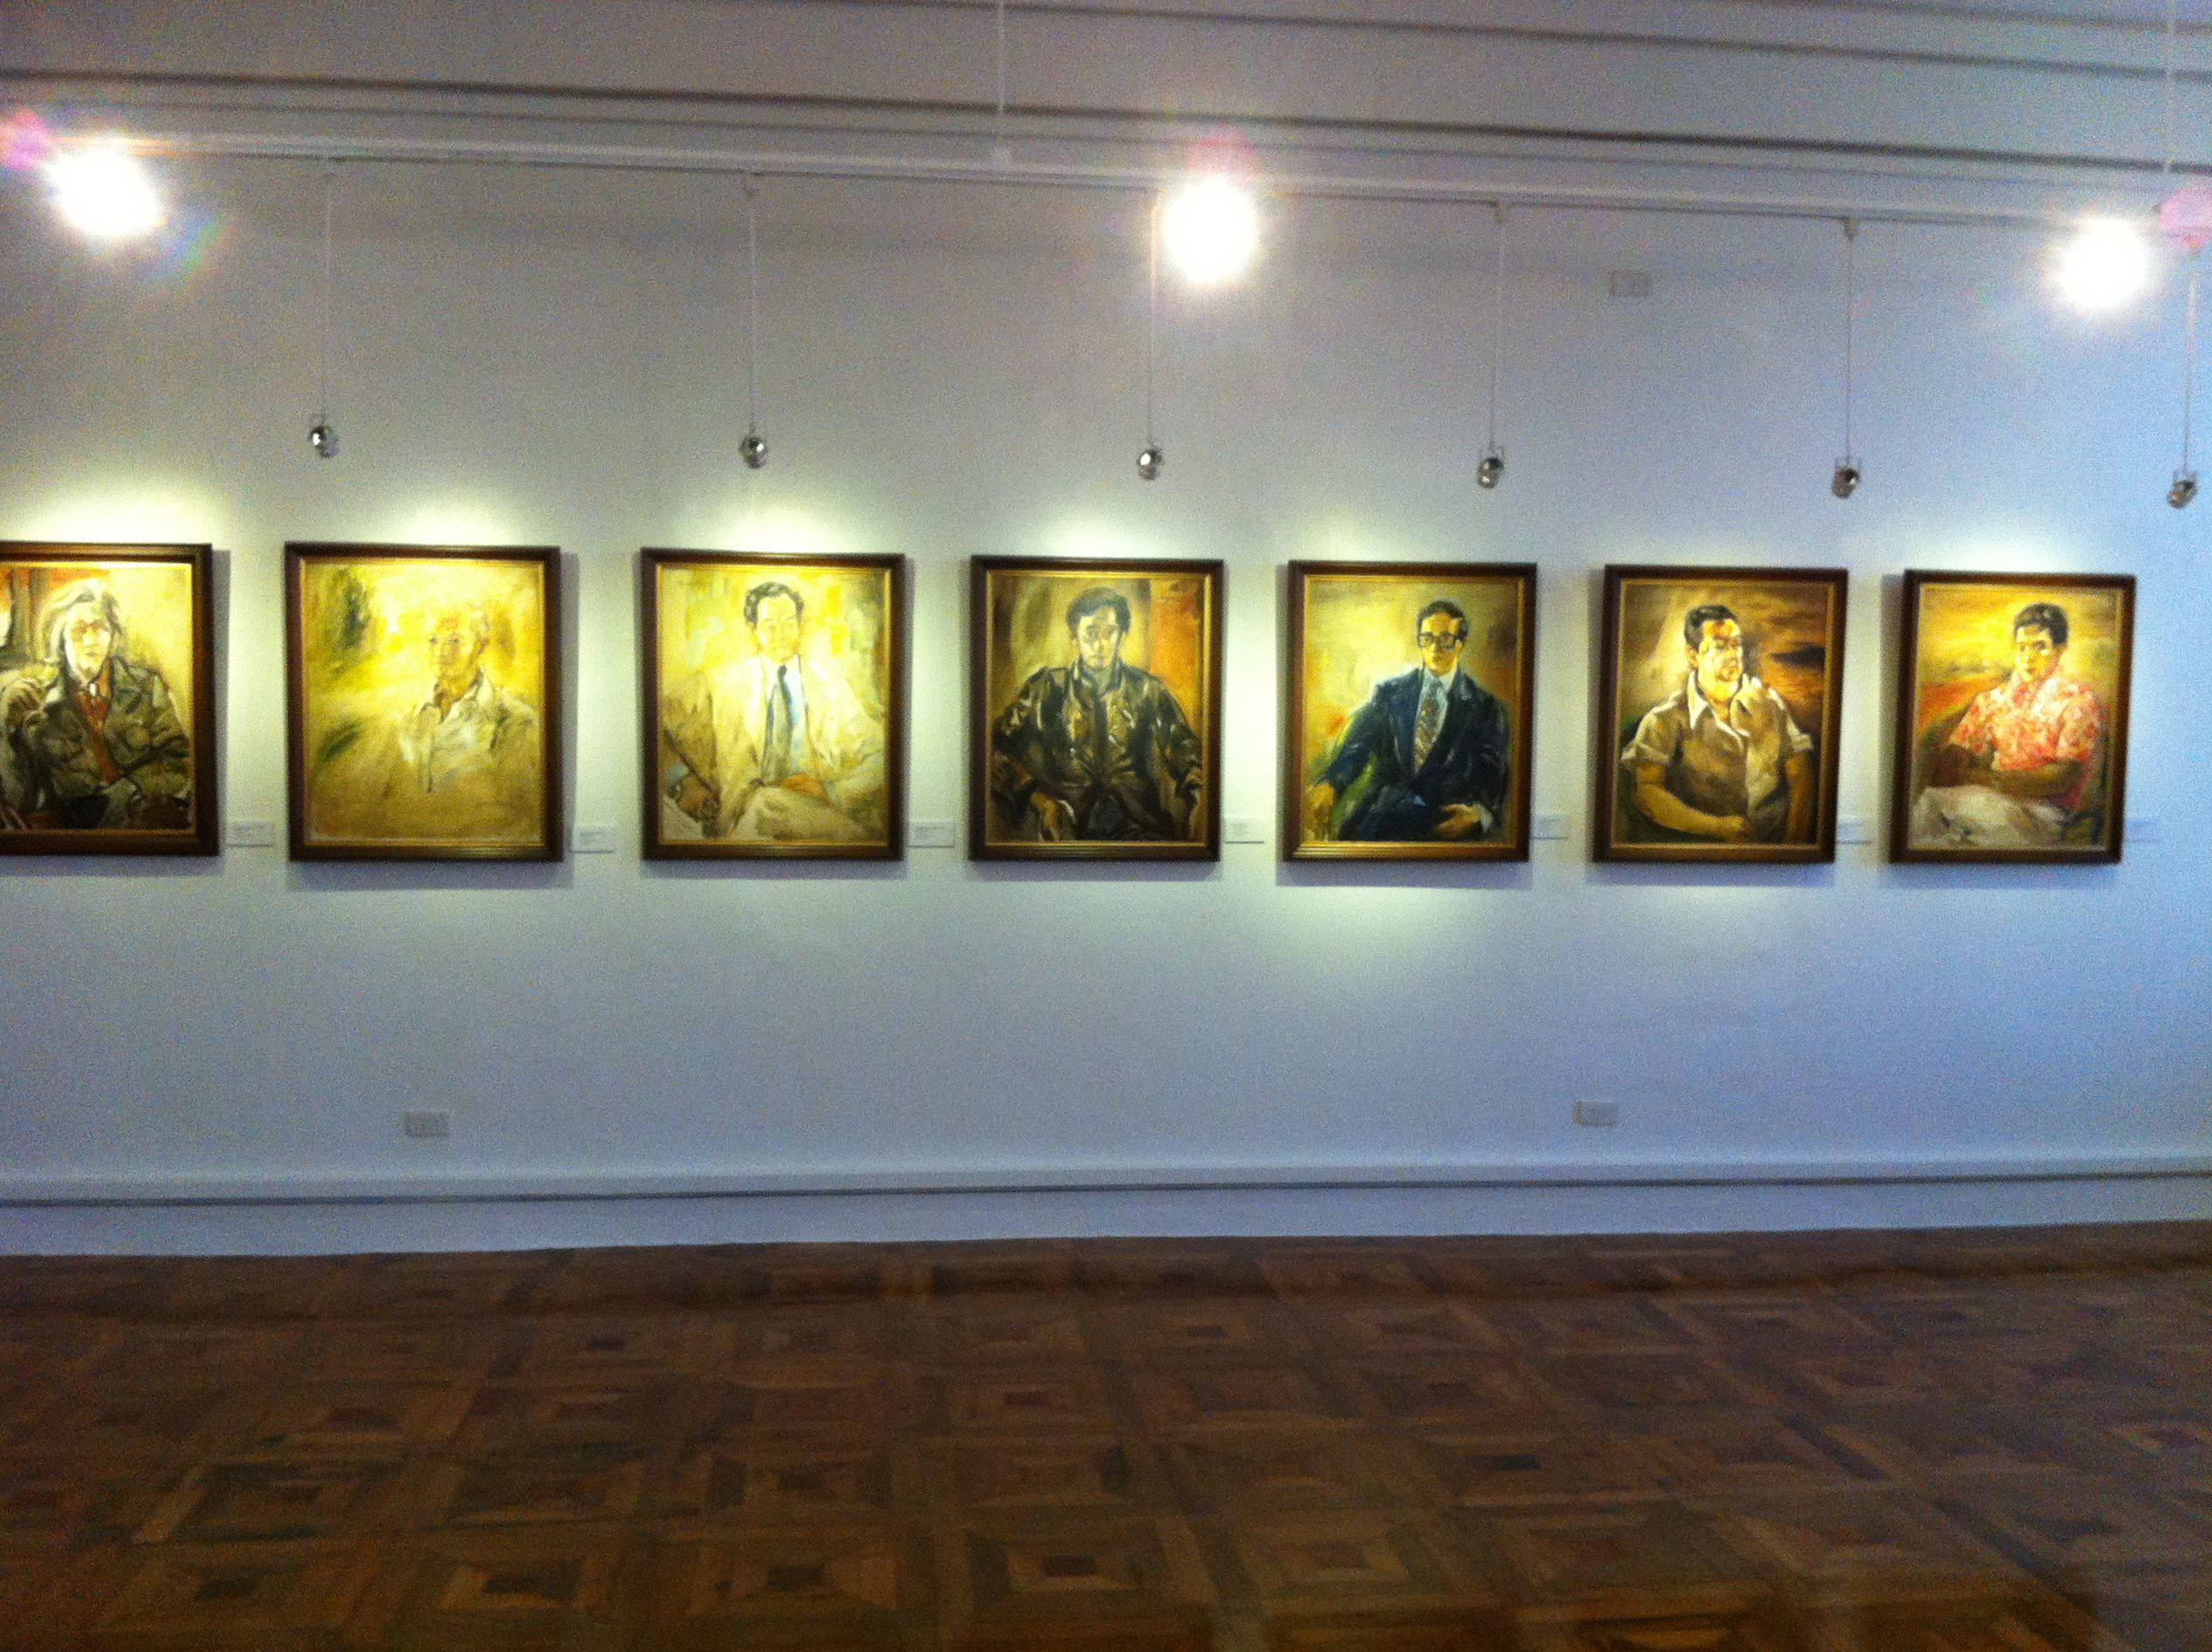 gsis museo ng sining April 23, 1996 under gsis pres & gm cesar sarino, formally inaugurated gsis museo ng sining with david b baradas as its founding curator the artworks are finally exhibited to the public and as a tribute to the creative endeavors of the contemporary filipino.